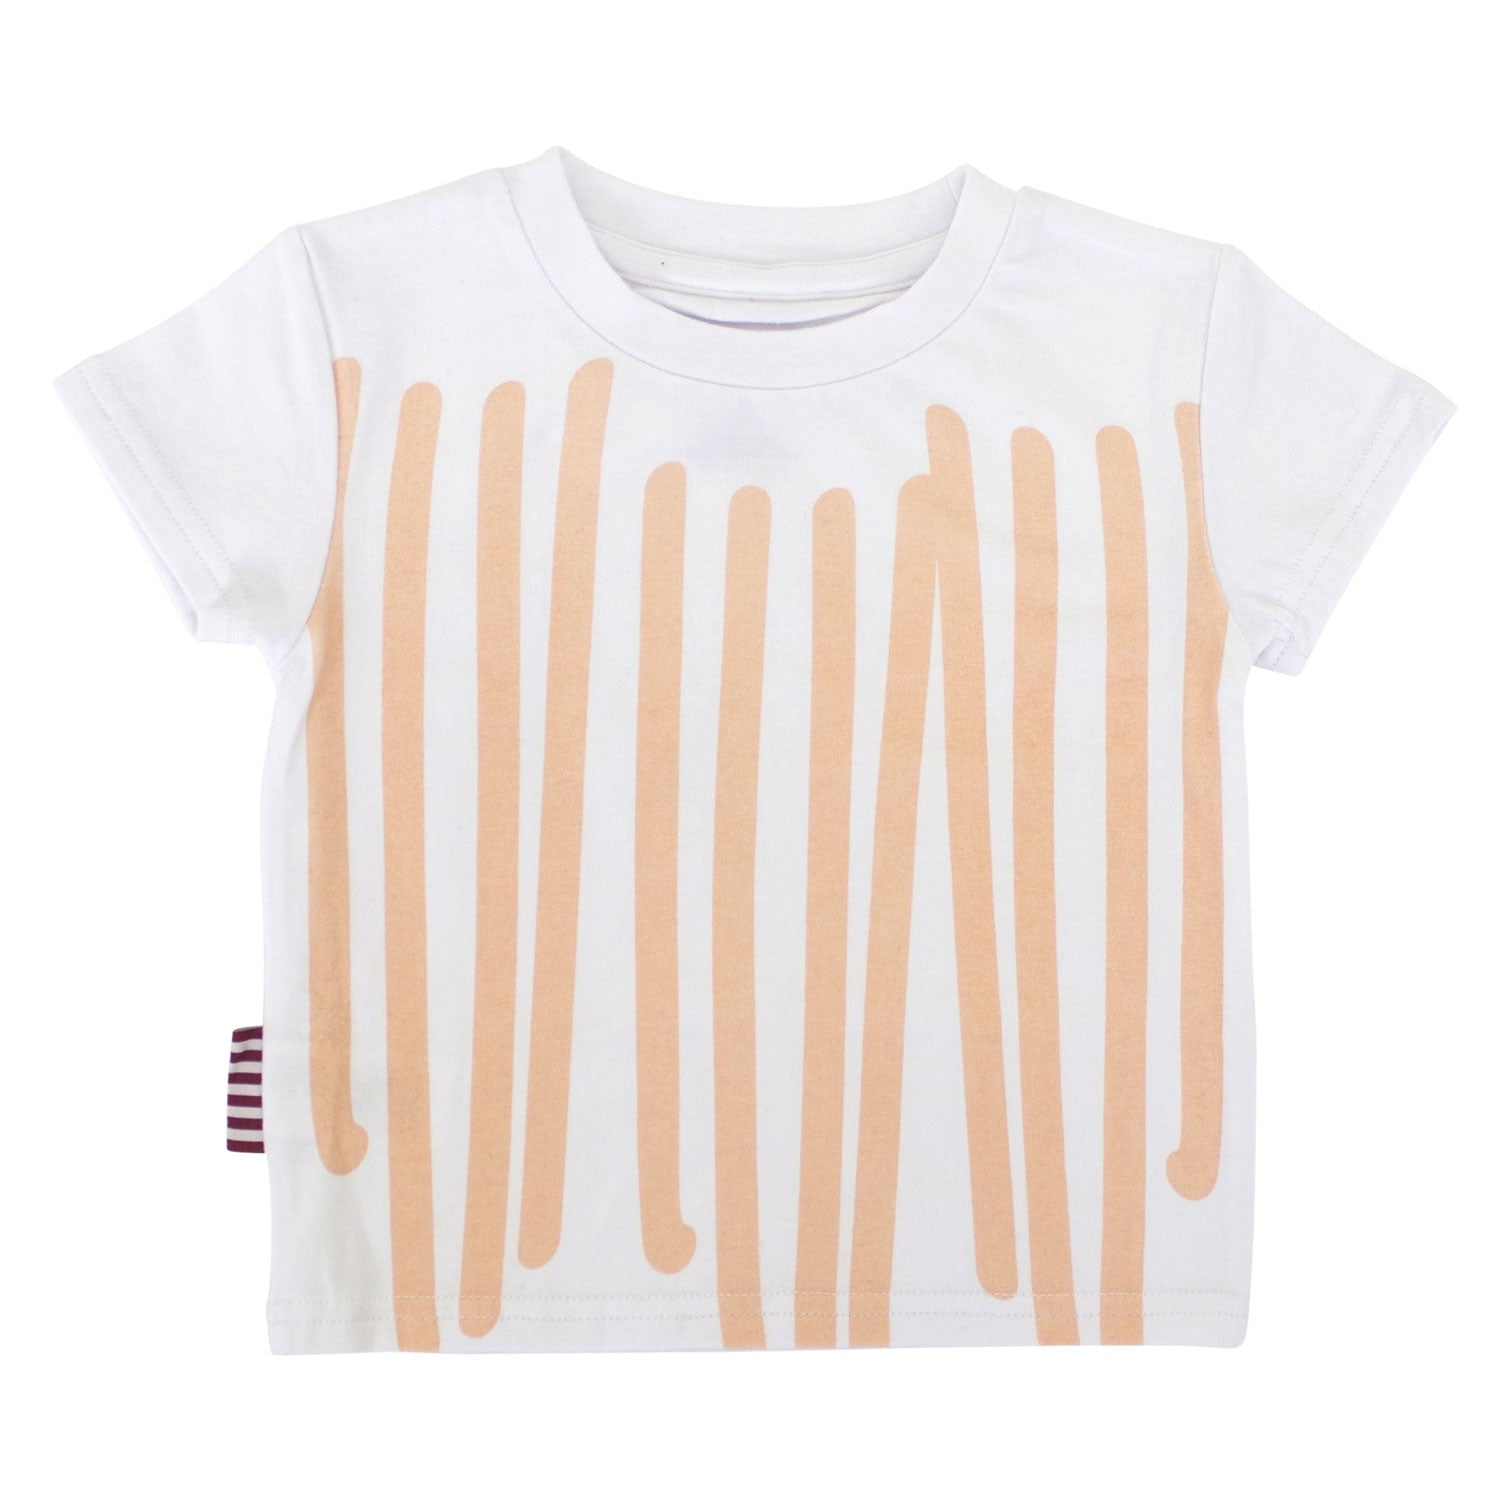 Peach Stripe Toddler Tee